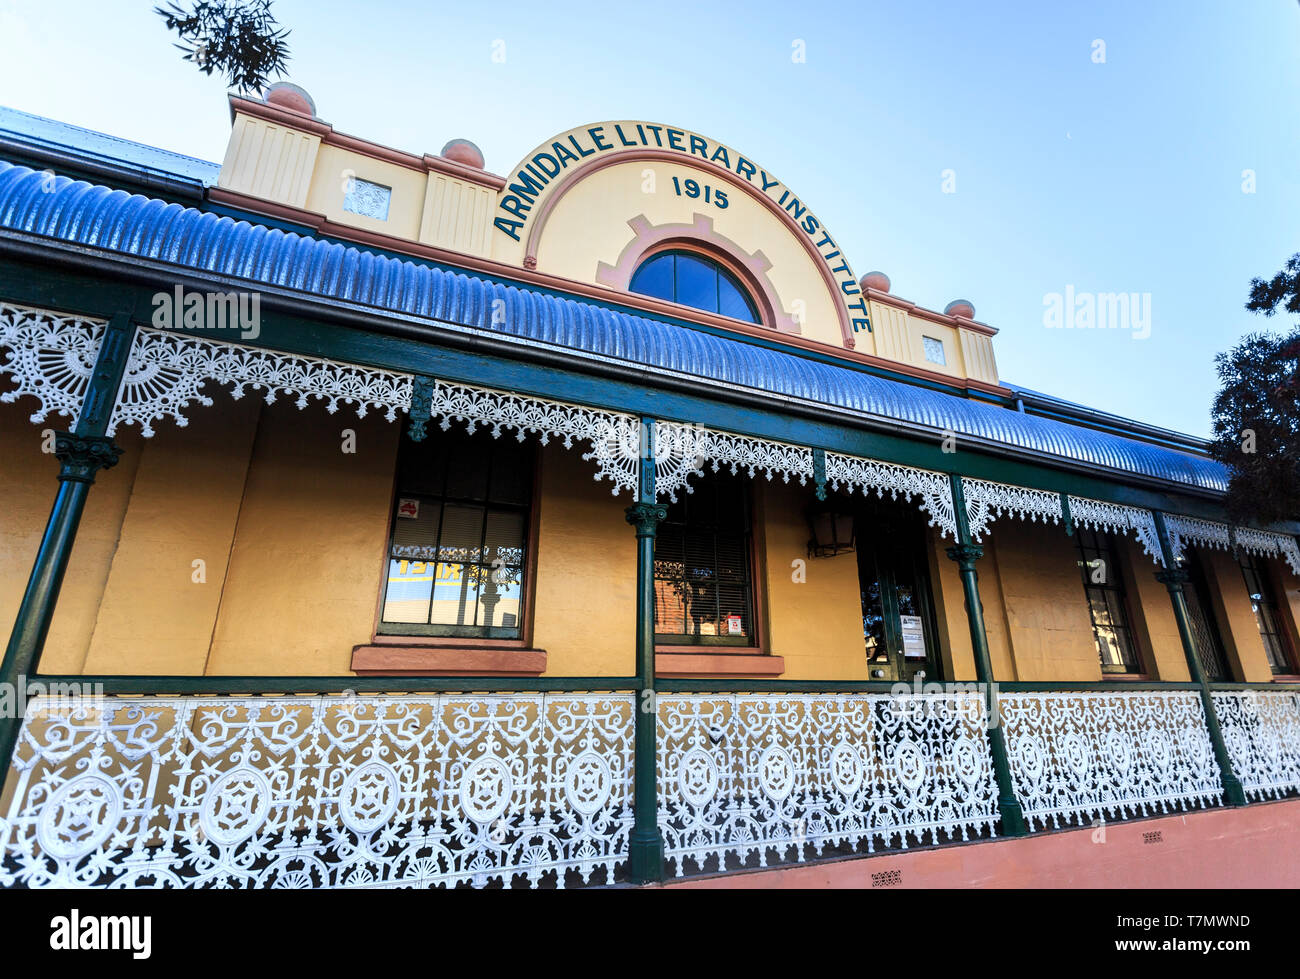 Facade of the School of Arts later known as the Literary Institute, built in 1863, and housing today the Folk Museum, in Armidale, NSW, Australia - Stock Image